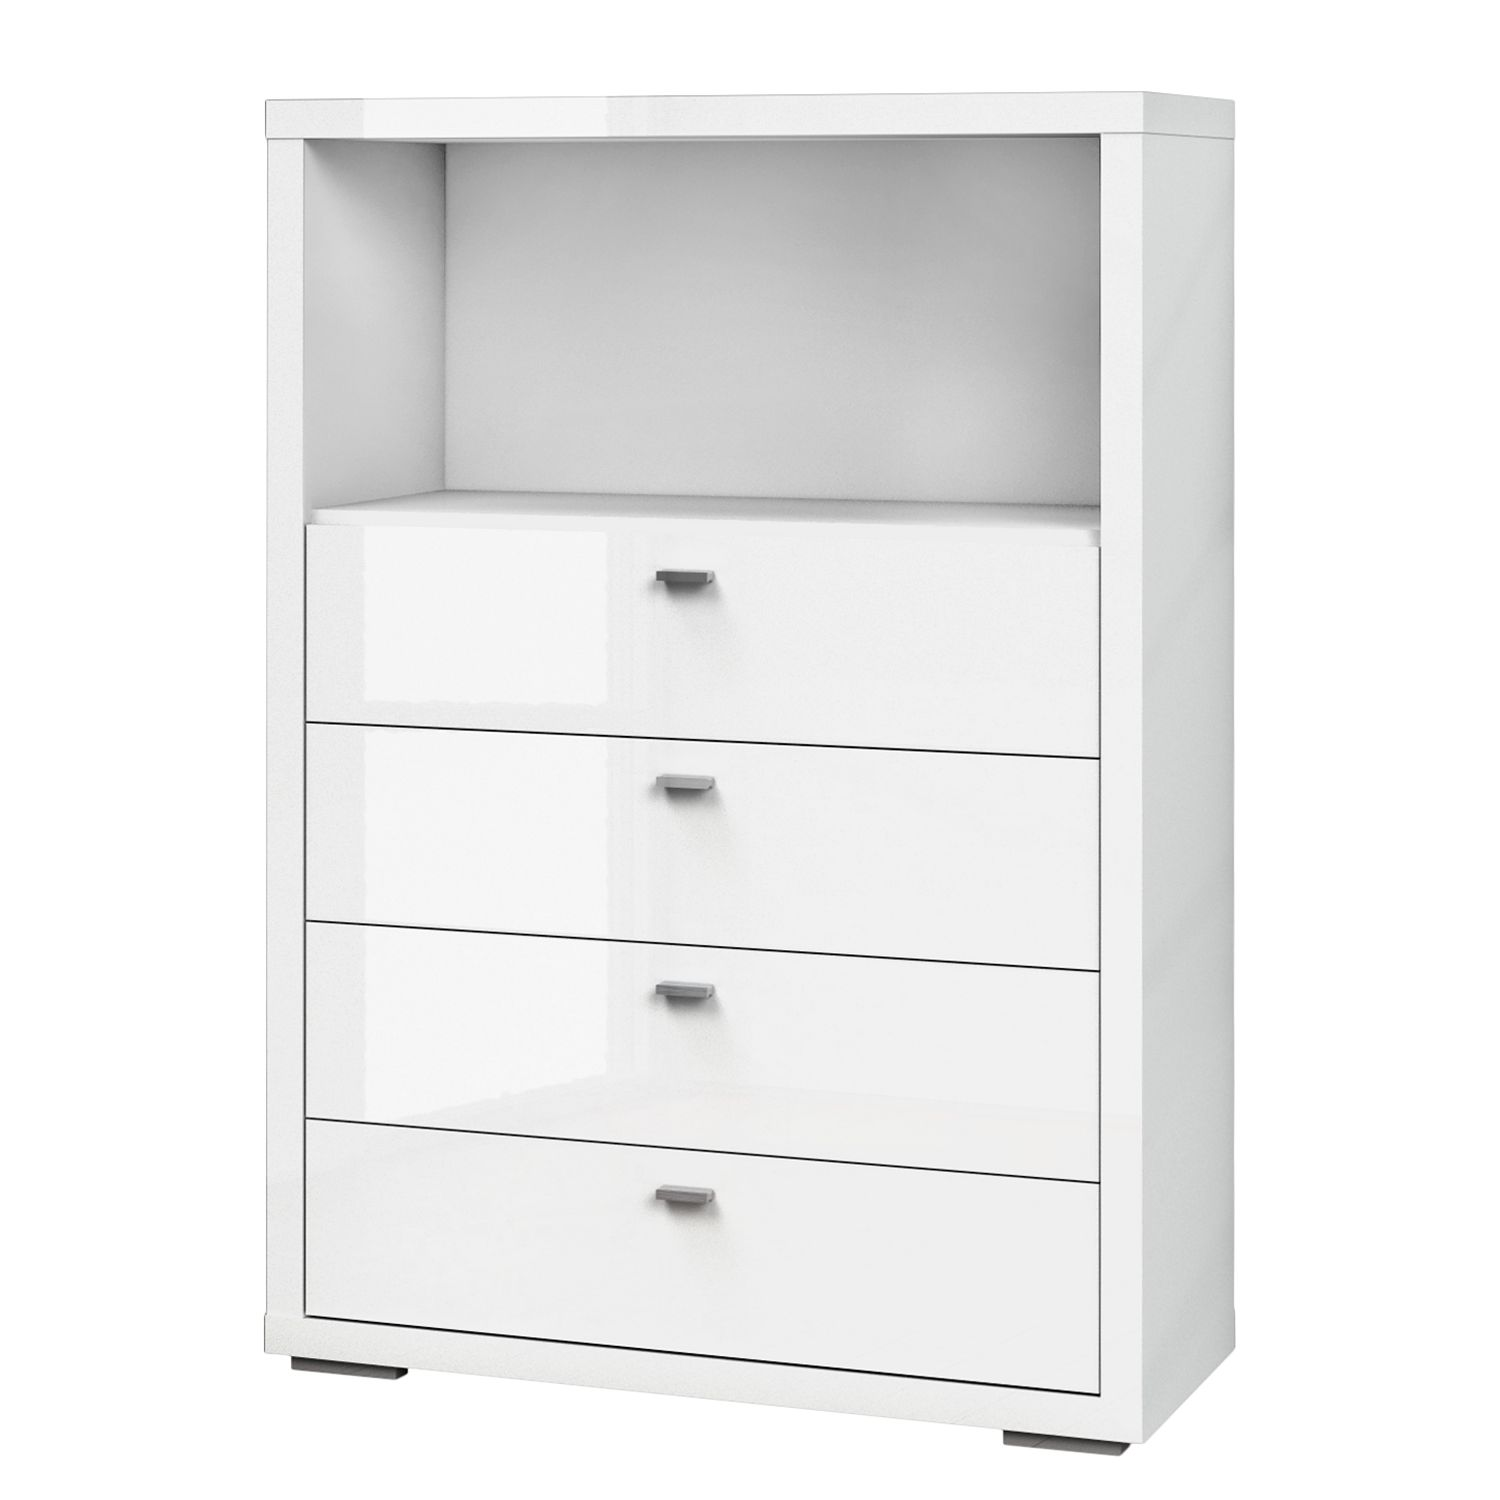 tv kommode ikea schrankwand ikea expedit wei tv kommode aufbewahrung two ikea malm chests as a. Black Bedroom Furniture Sets. Home Design Ideas